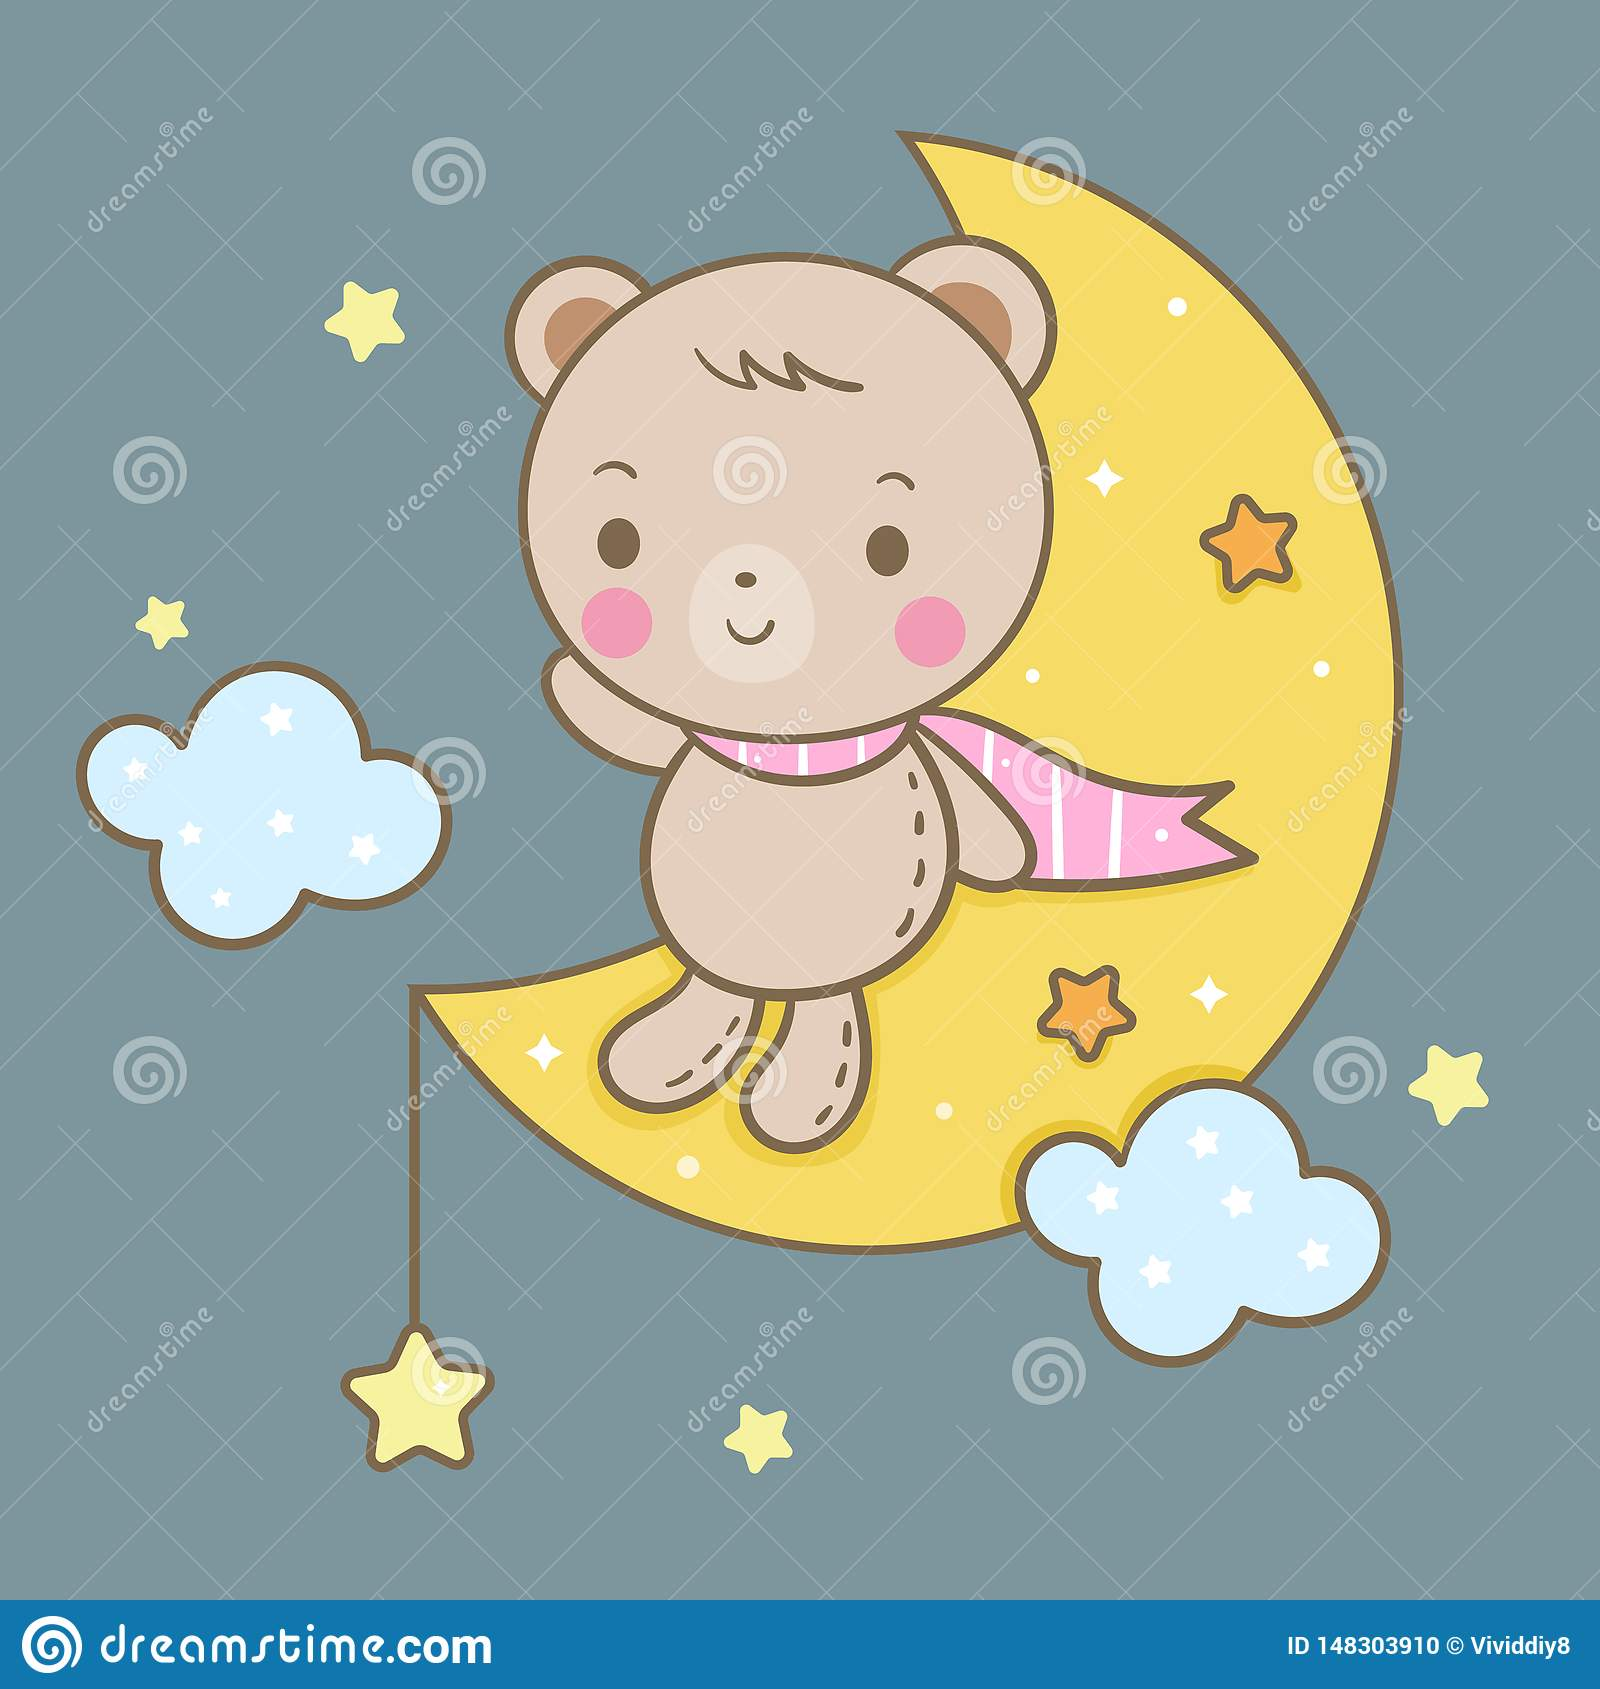 Cute bear vector on moon, magic sleeping time for sweet dream, Kawaii style with star.